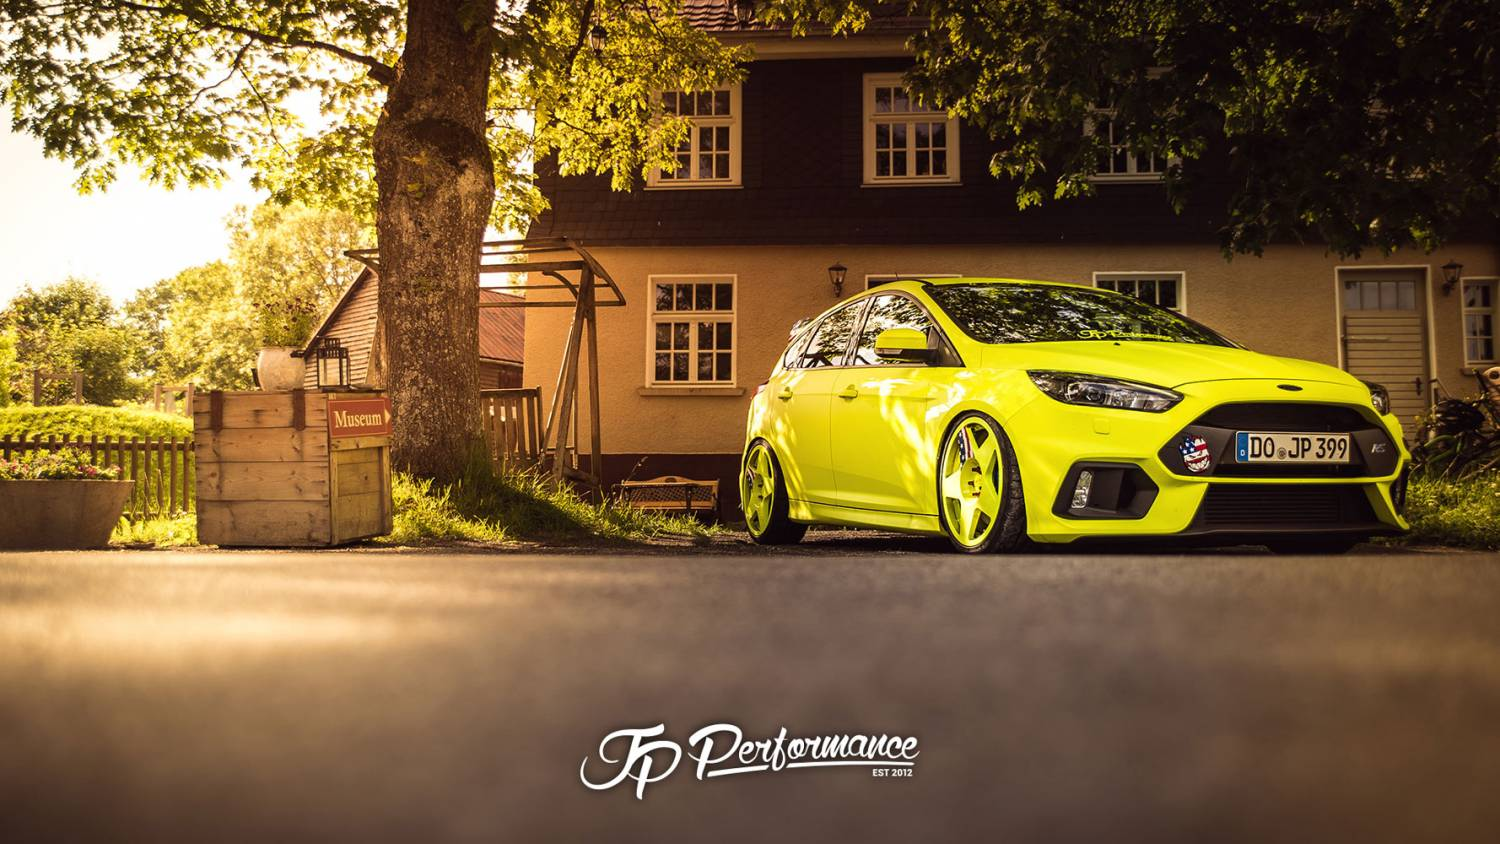 Race Car Wallpaper Images Jp Performance Ford Focus Rs Wallpaper Addicted To